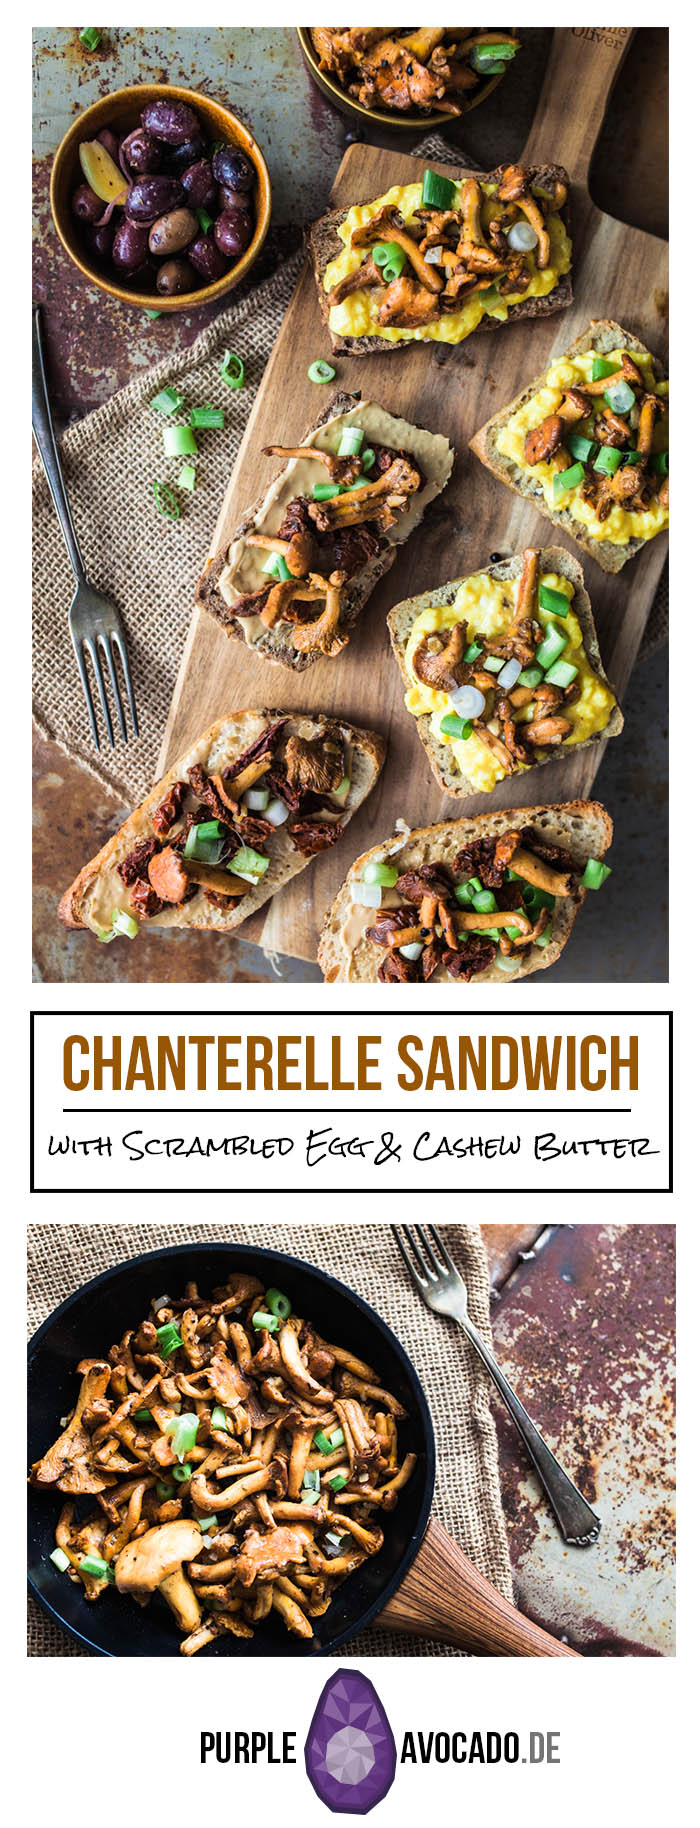 For breakfast, brunch or lunch – Those chanterelle sandwiches with scrambled egg, dried tomatoes and cashew butter surely will satisfy your tastebuds with a variety of tastes and textures.